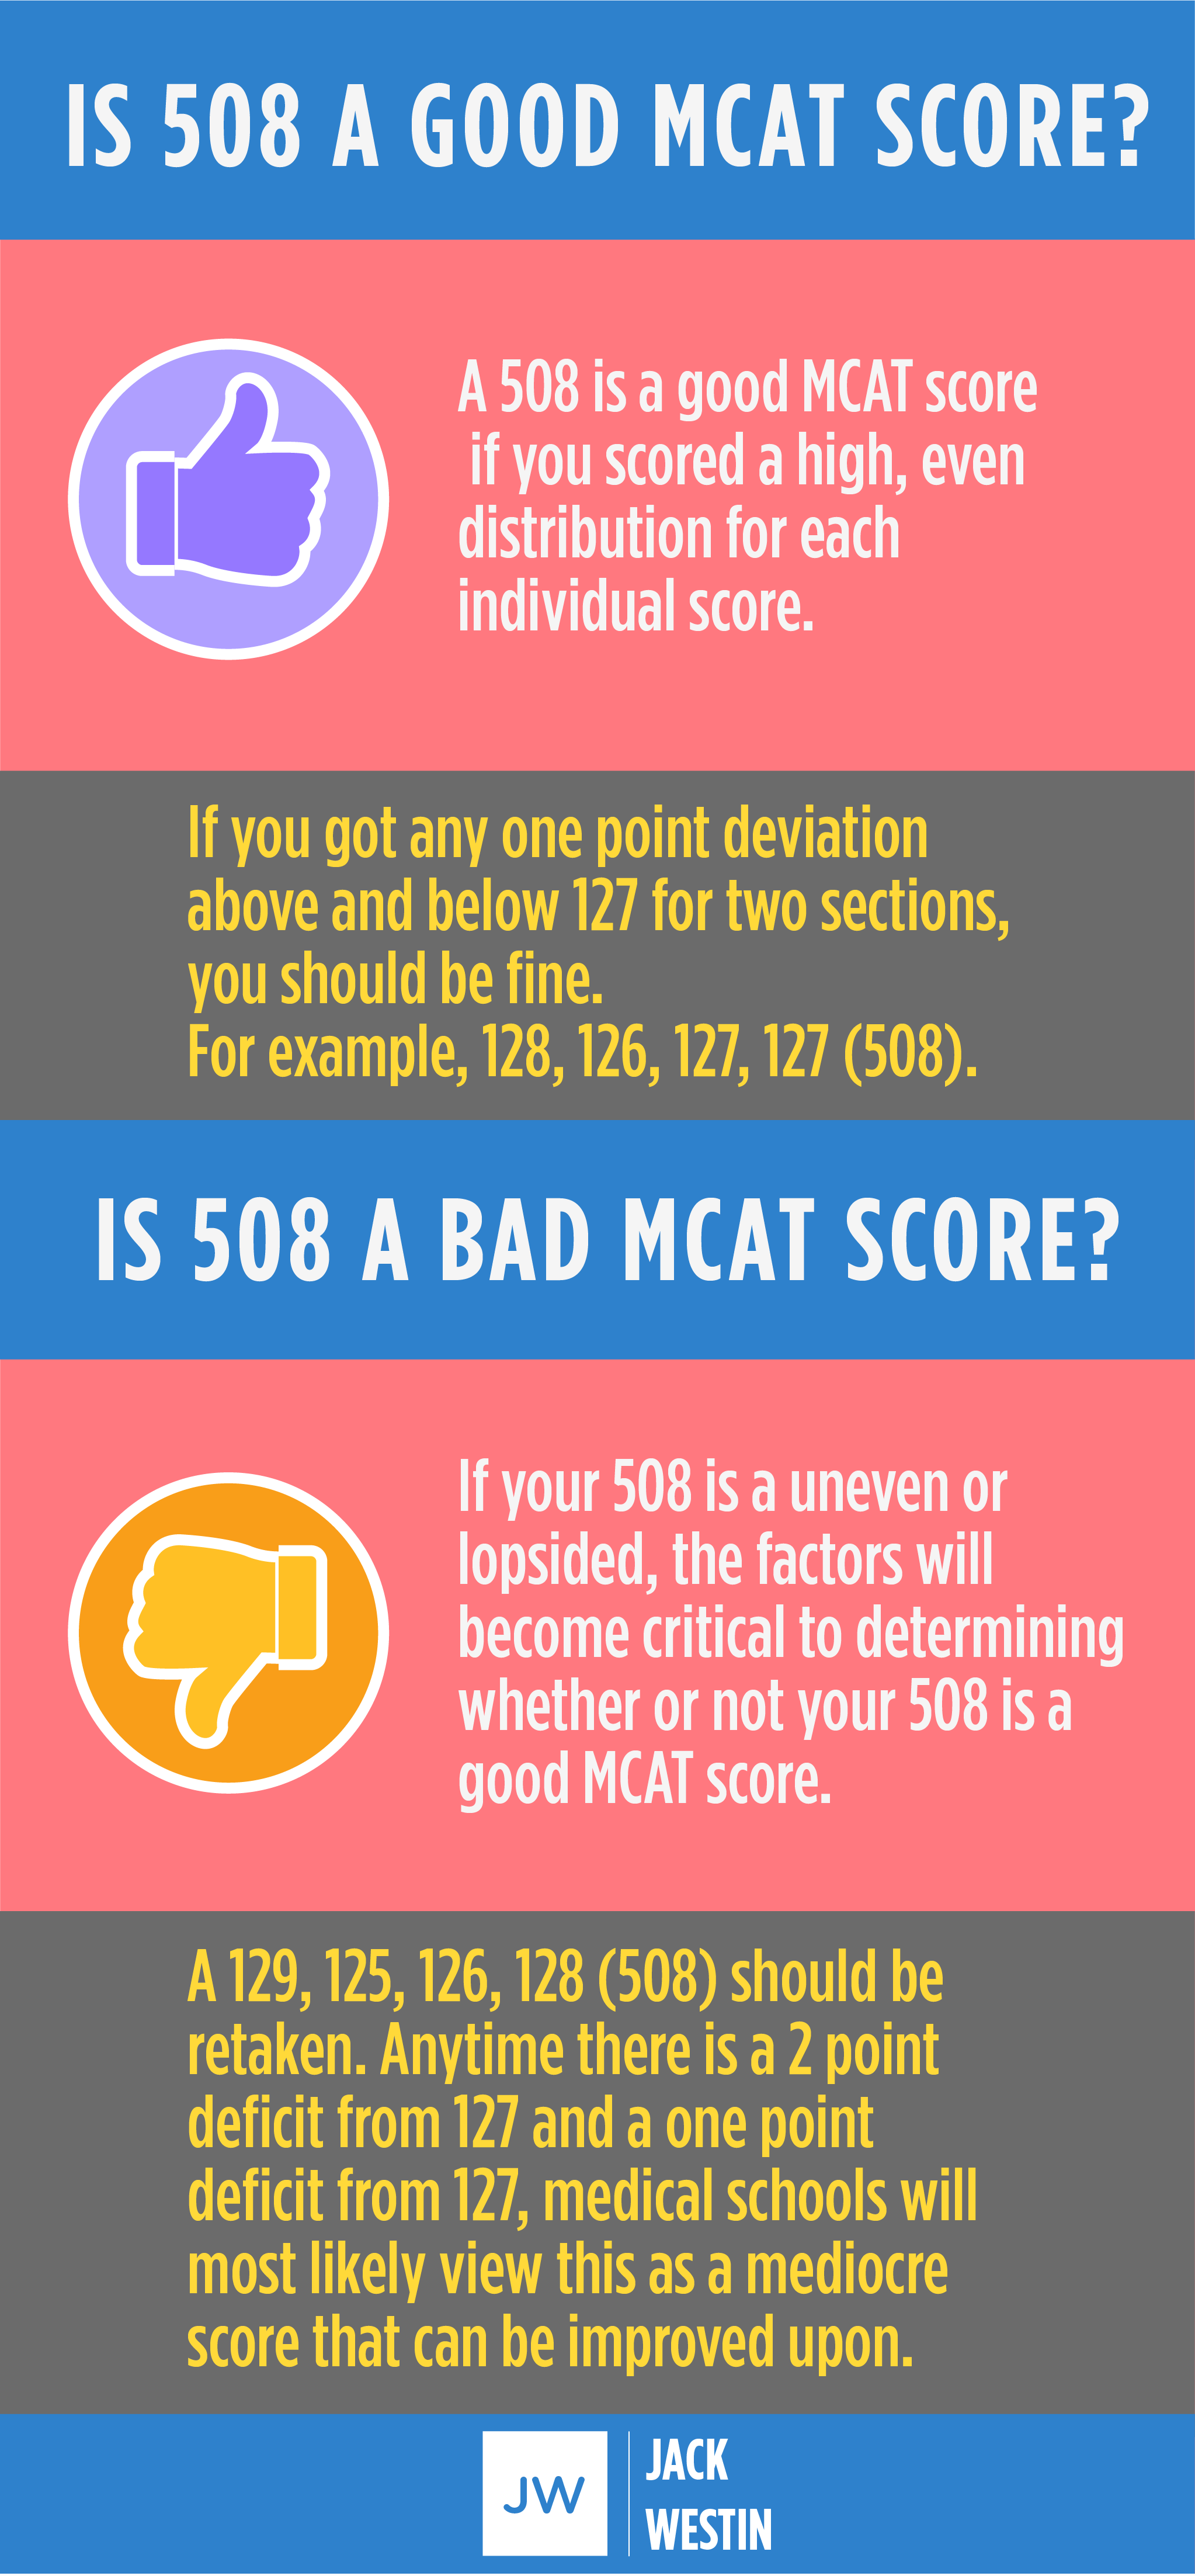 Is 508 a good MCAT score? Is 508 a bad MCAT score?